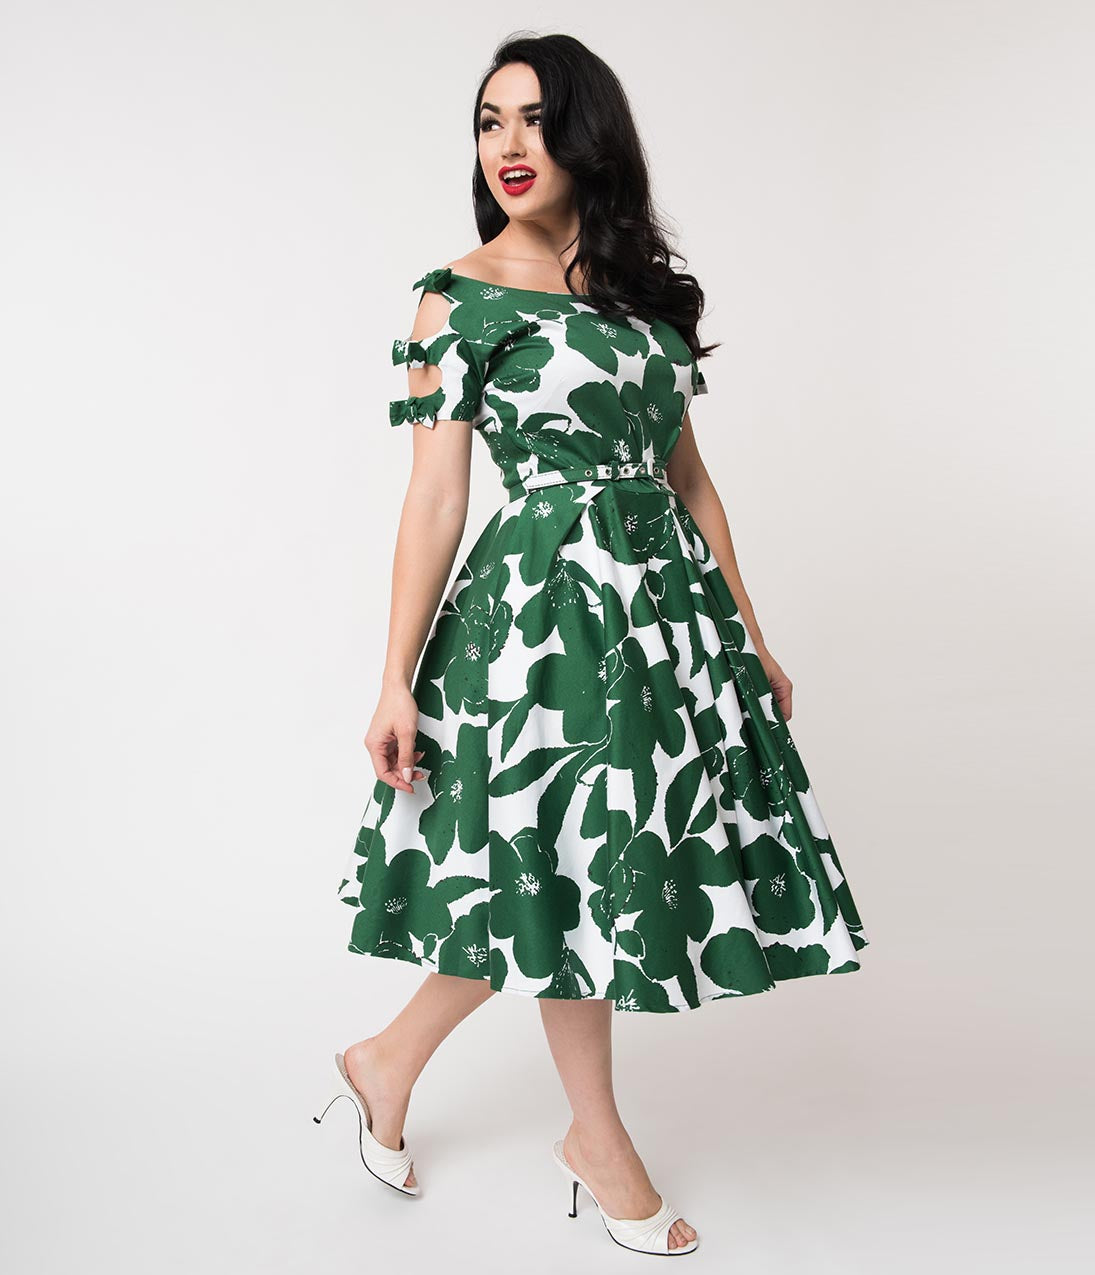 Retro Tiki Dress – Tropical, Hawaiian Dresses Unique Vintage 1950S White  Green Floral Bow Sleeve Selma Swing Dress $98.00 AT vintagedancer.com